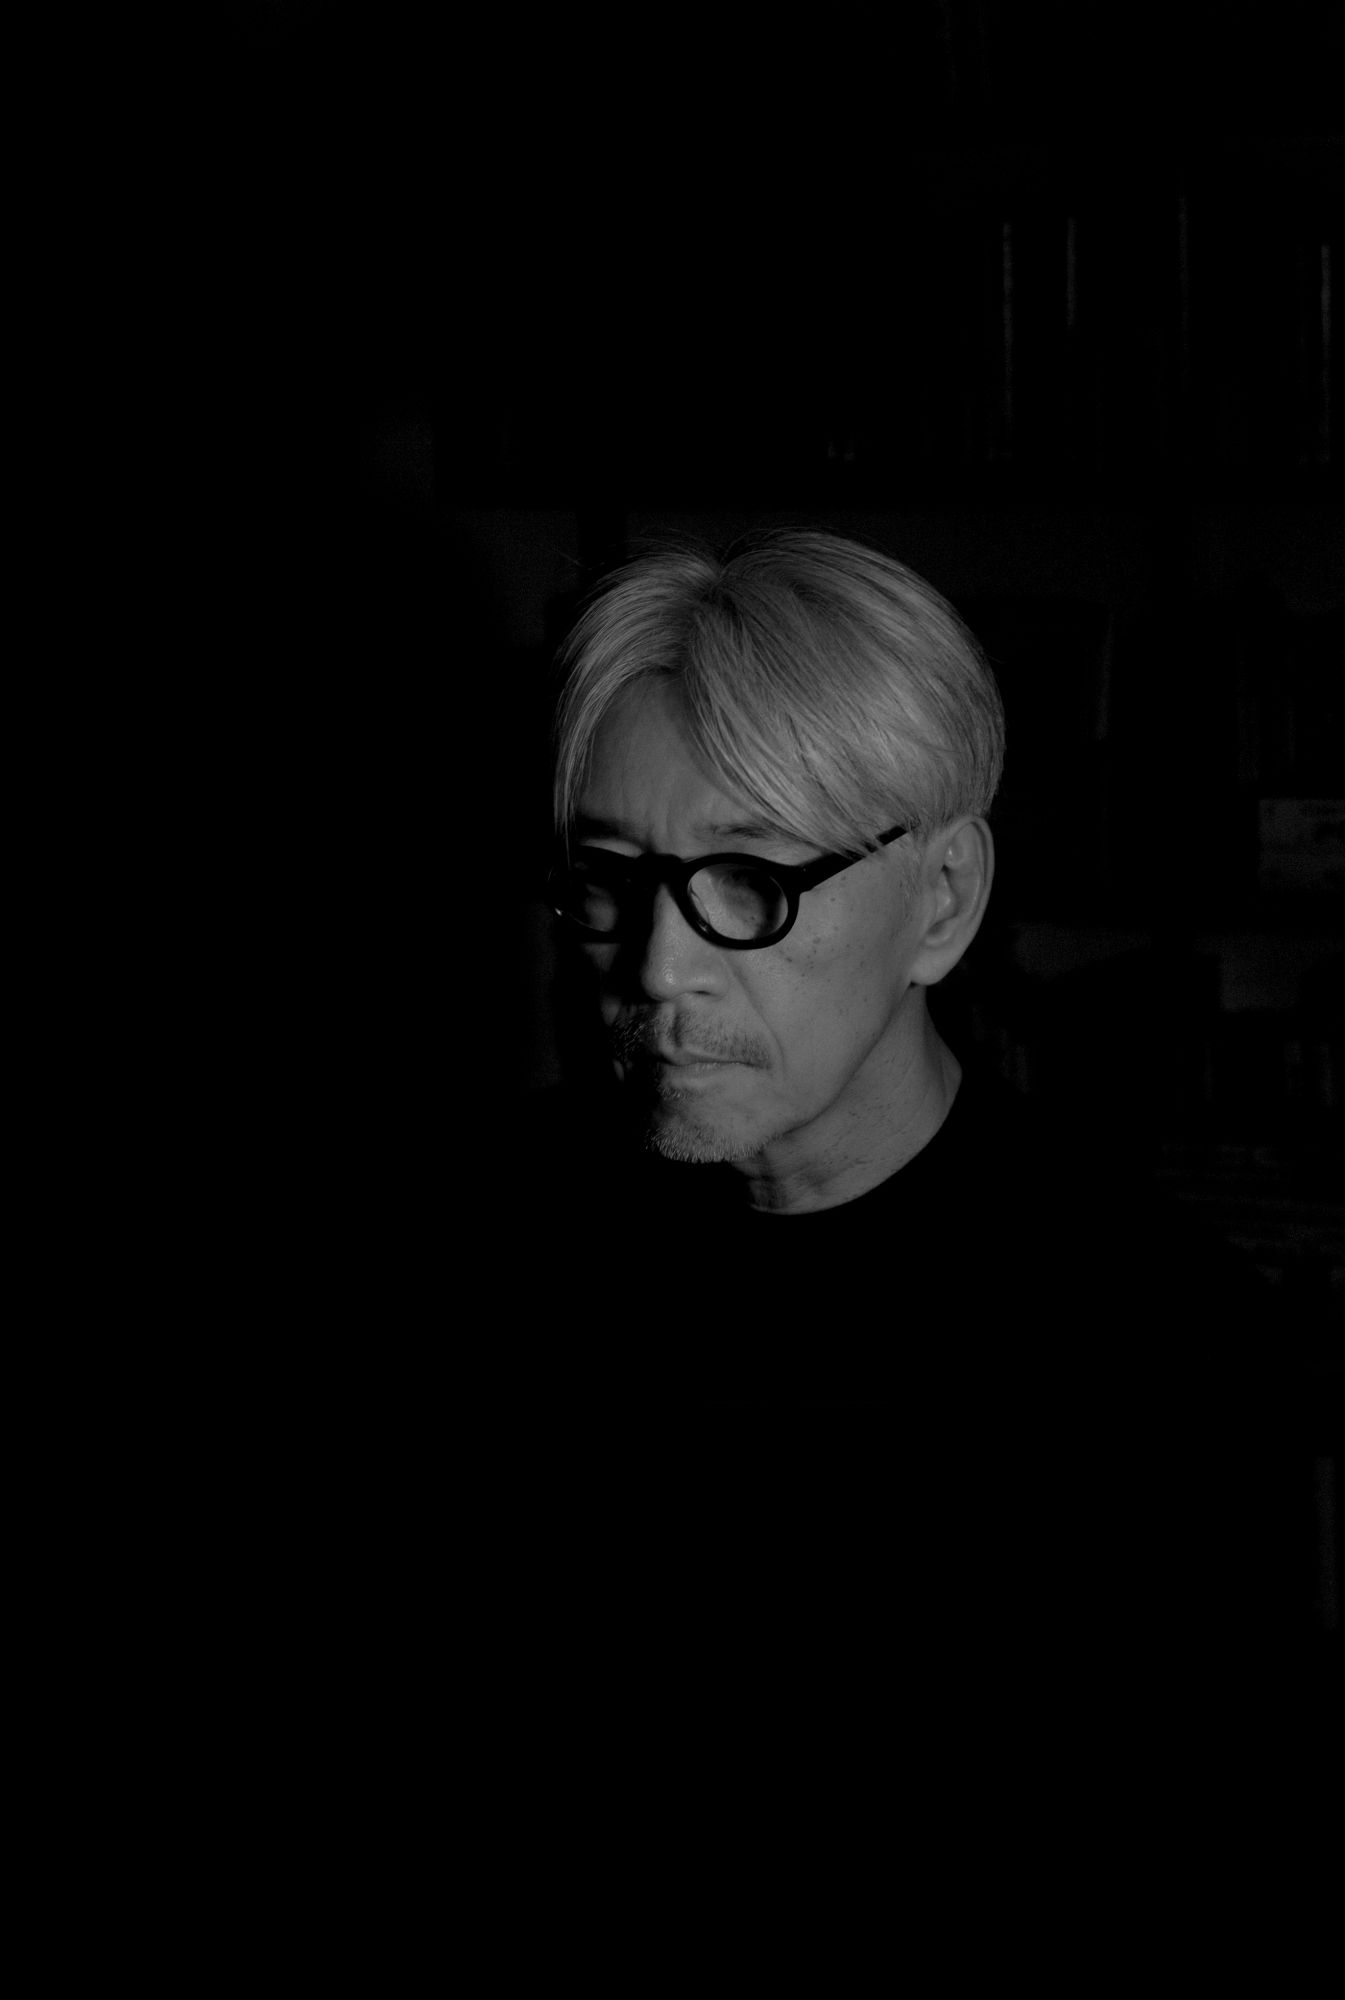 5 Things You Didn't Know About Ryuichi Sakamoto